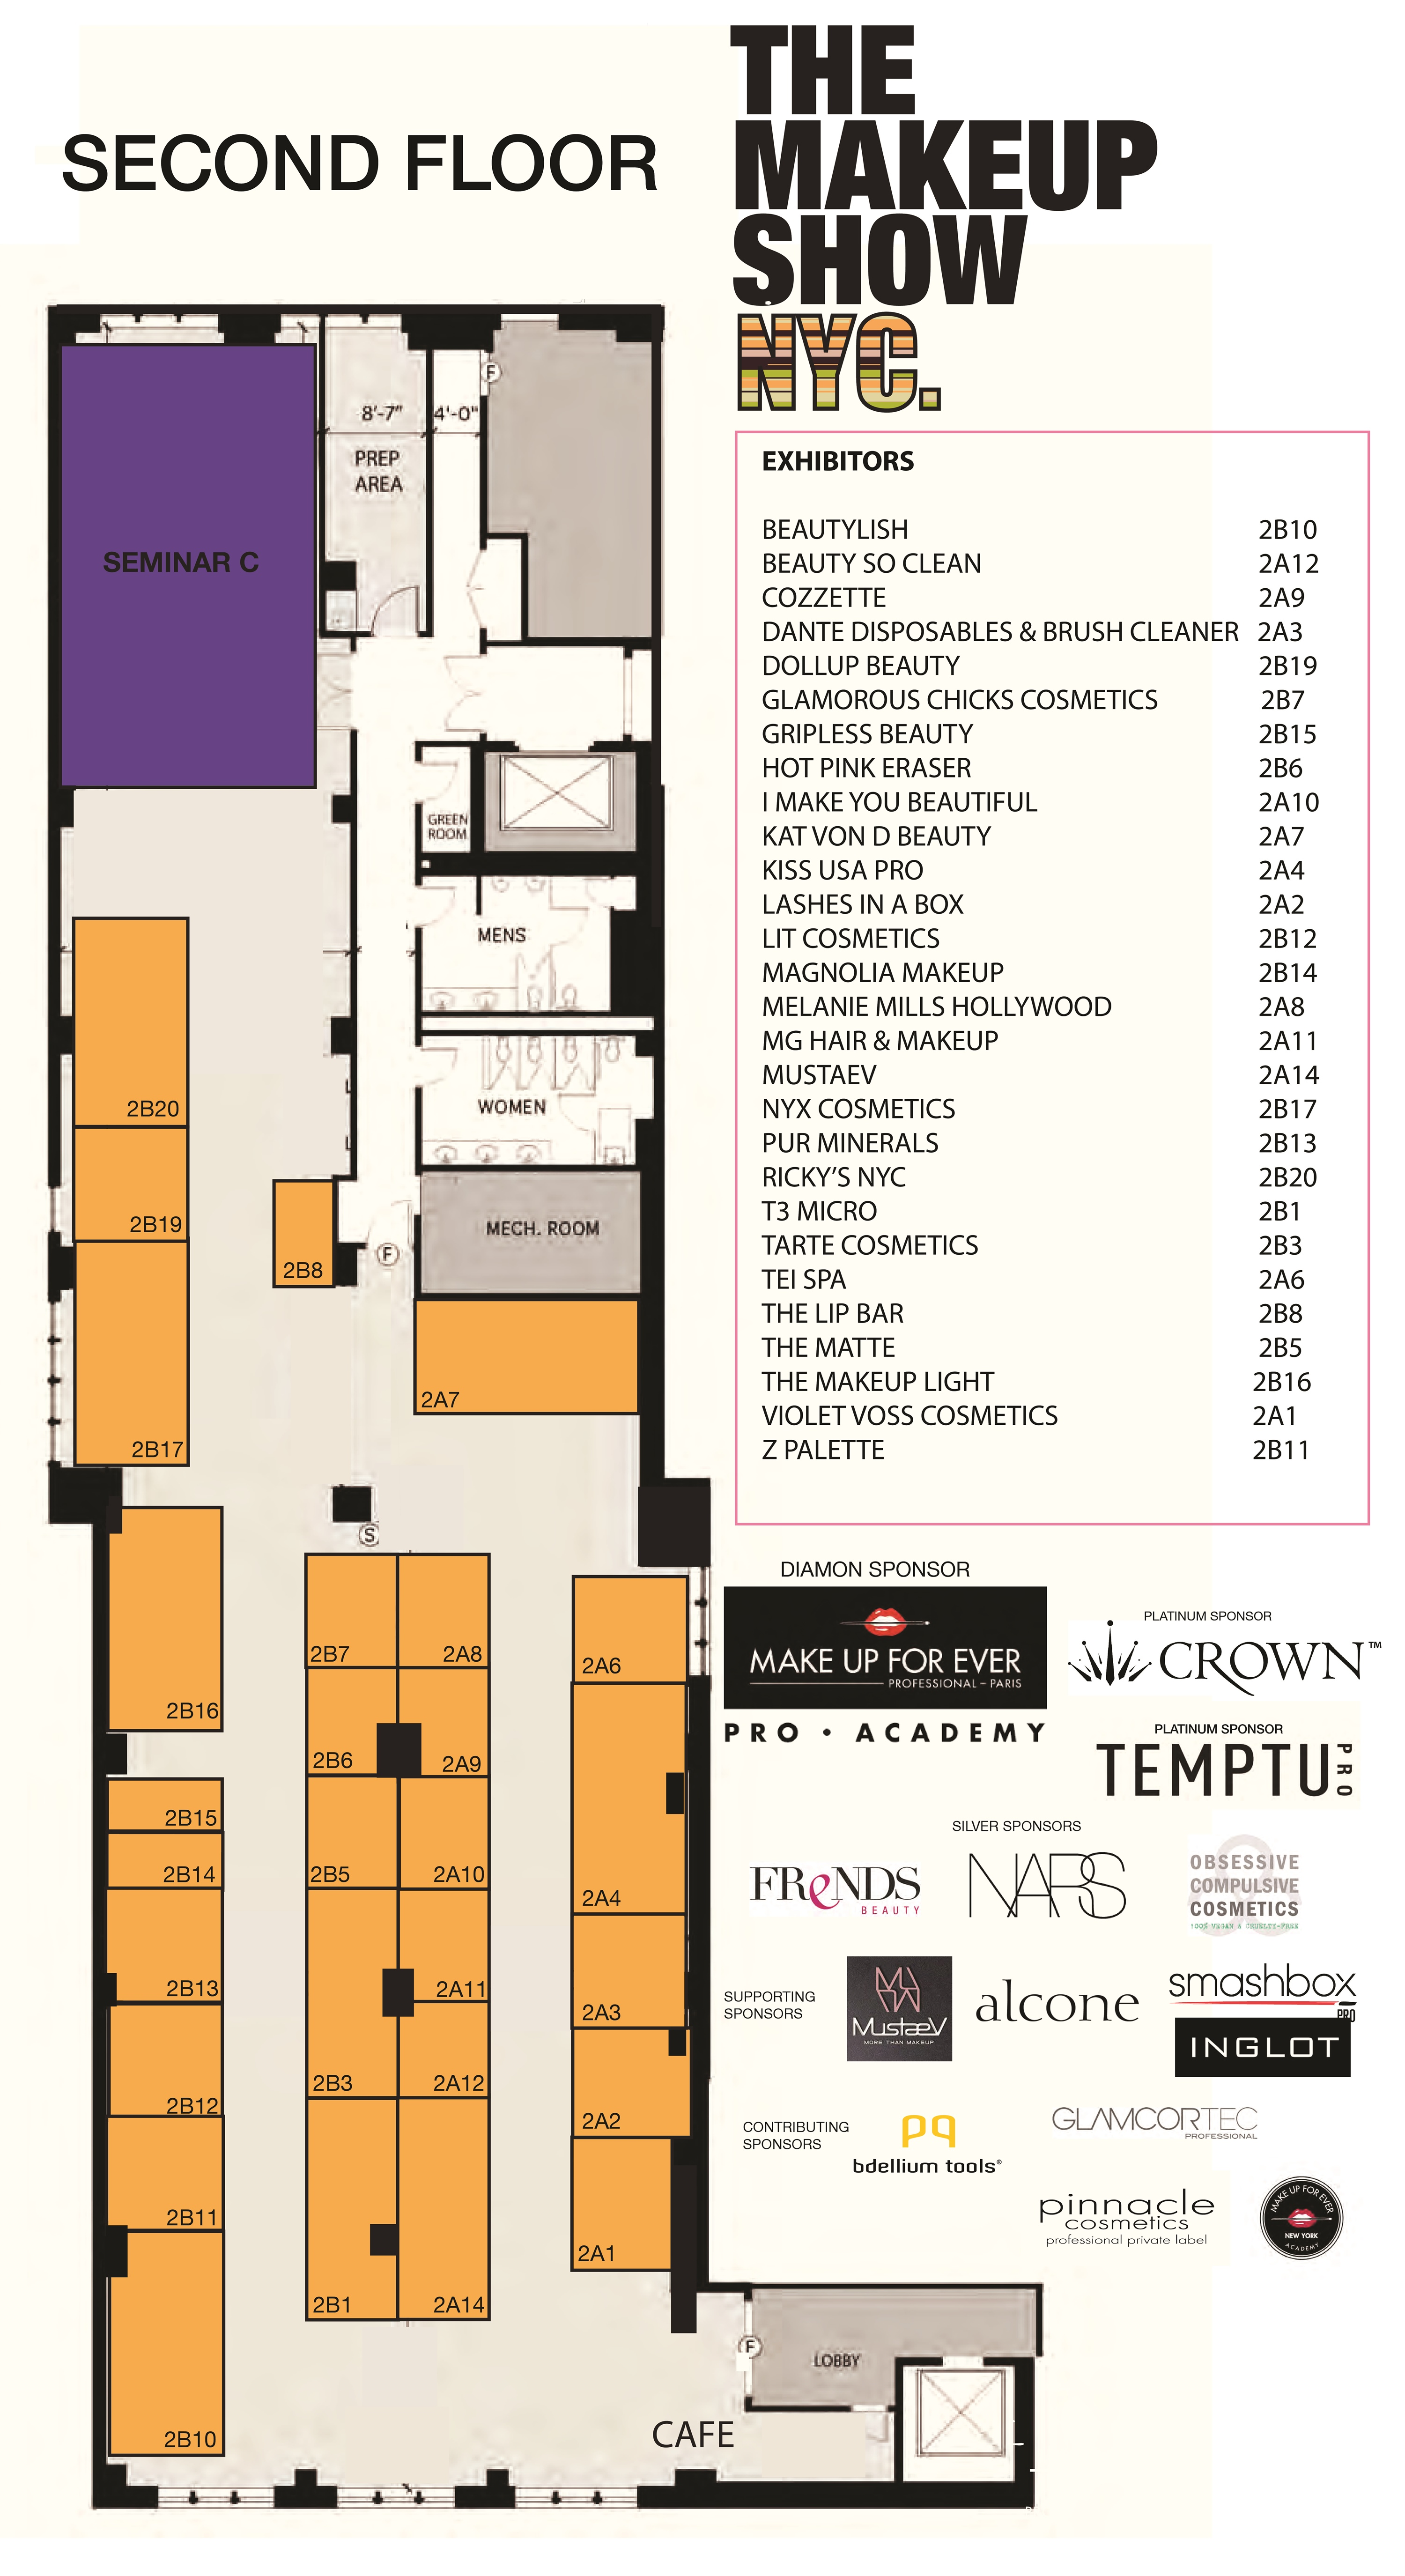 The Makeup Show second floor plan